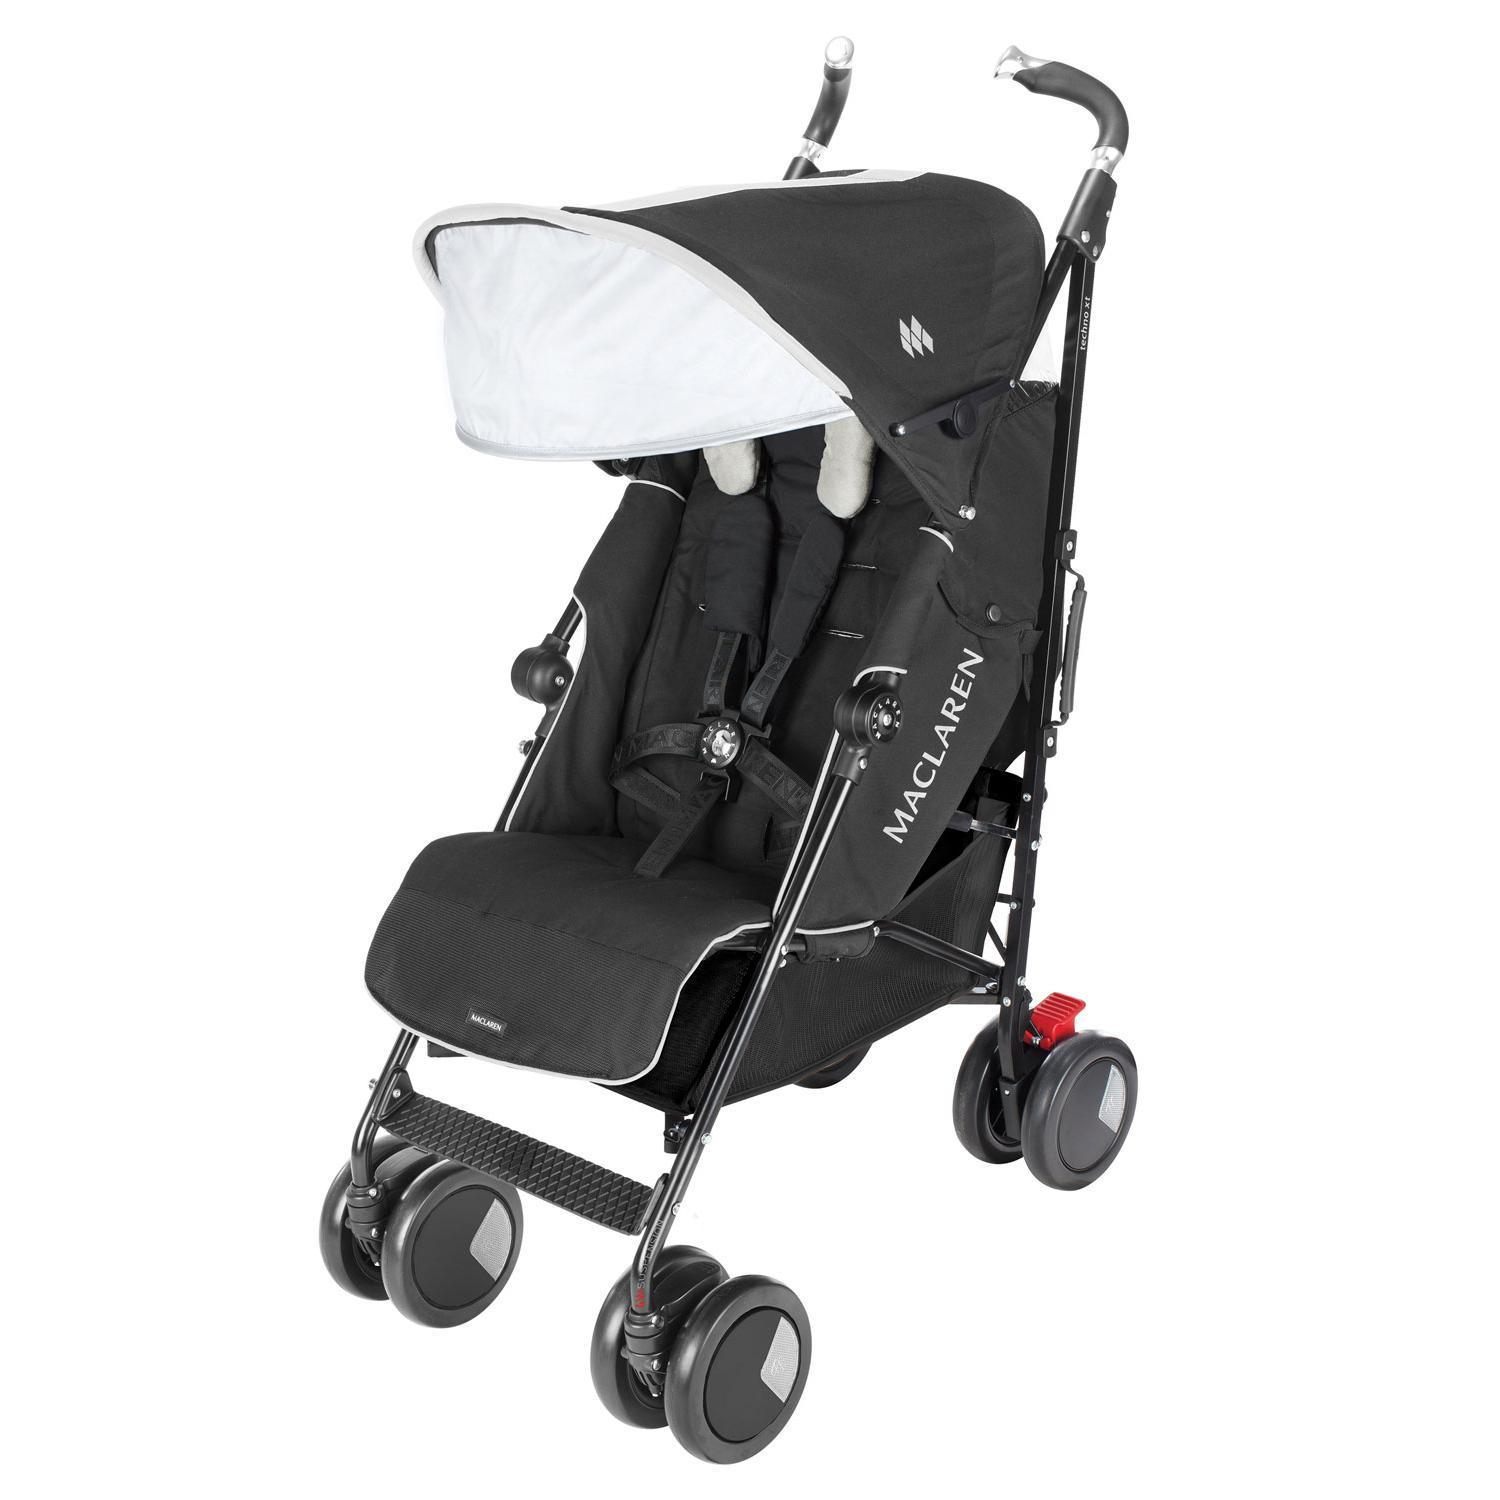 Red Newborn Pram Why Many Celebs Choose The Maclaren Pushchair Deals For